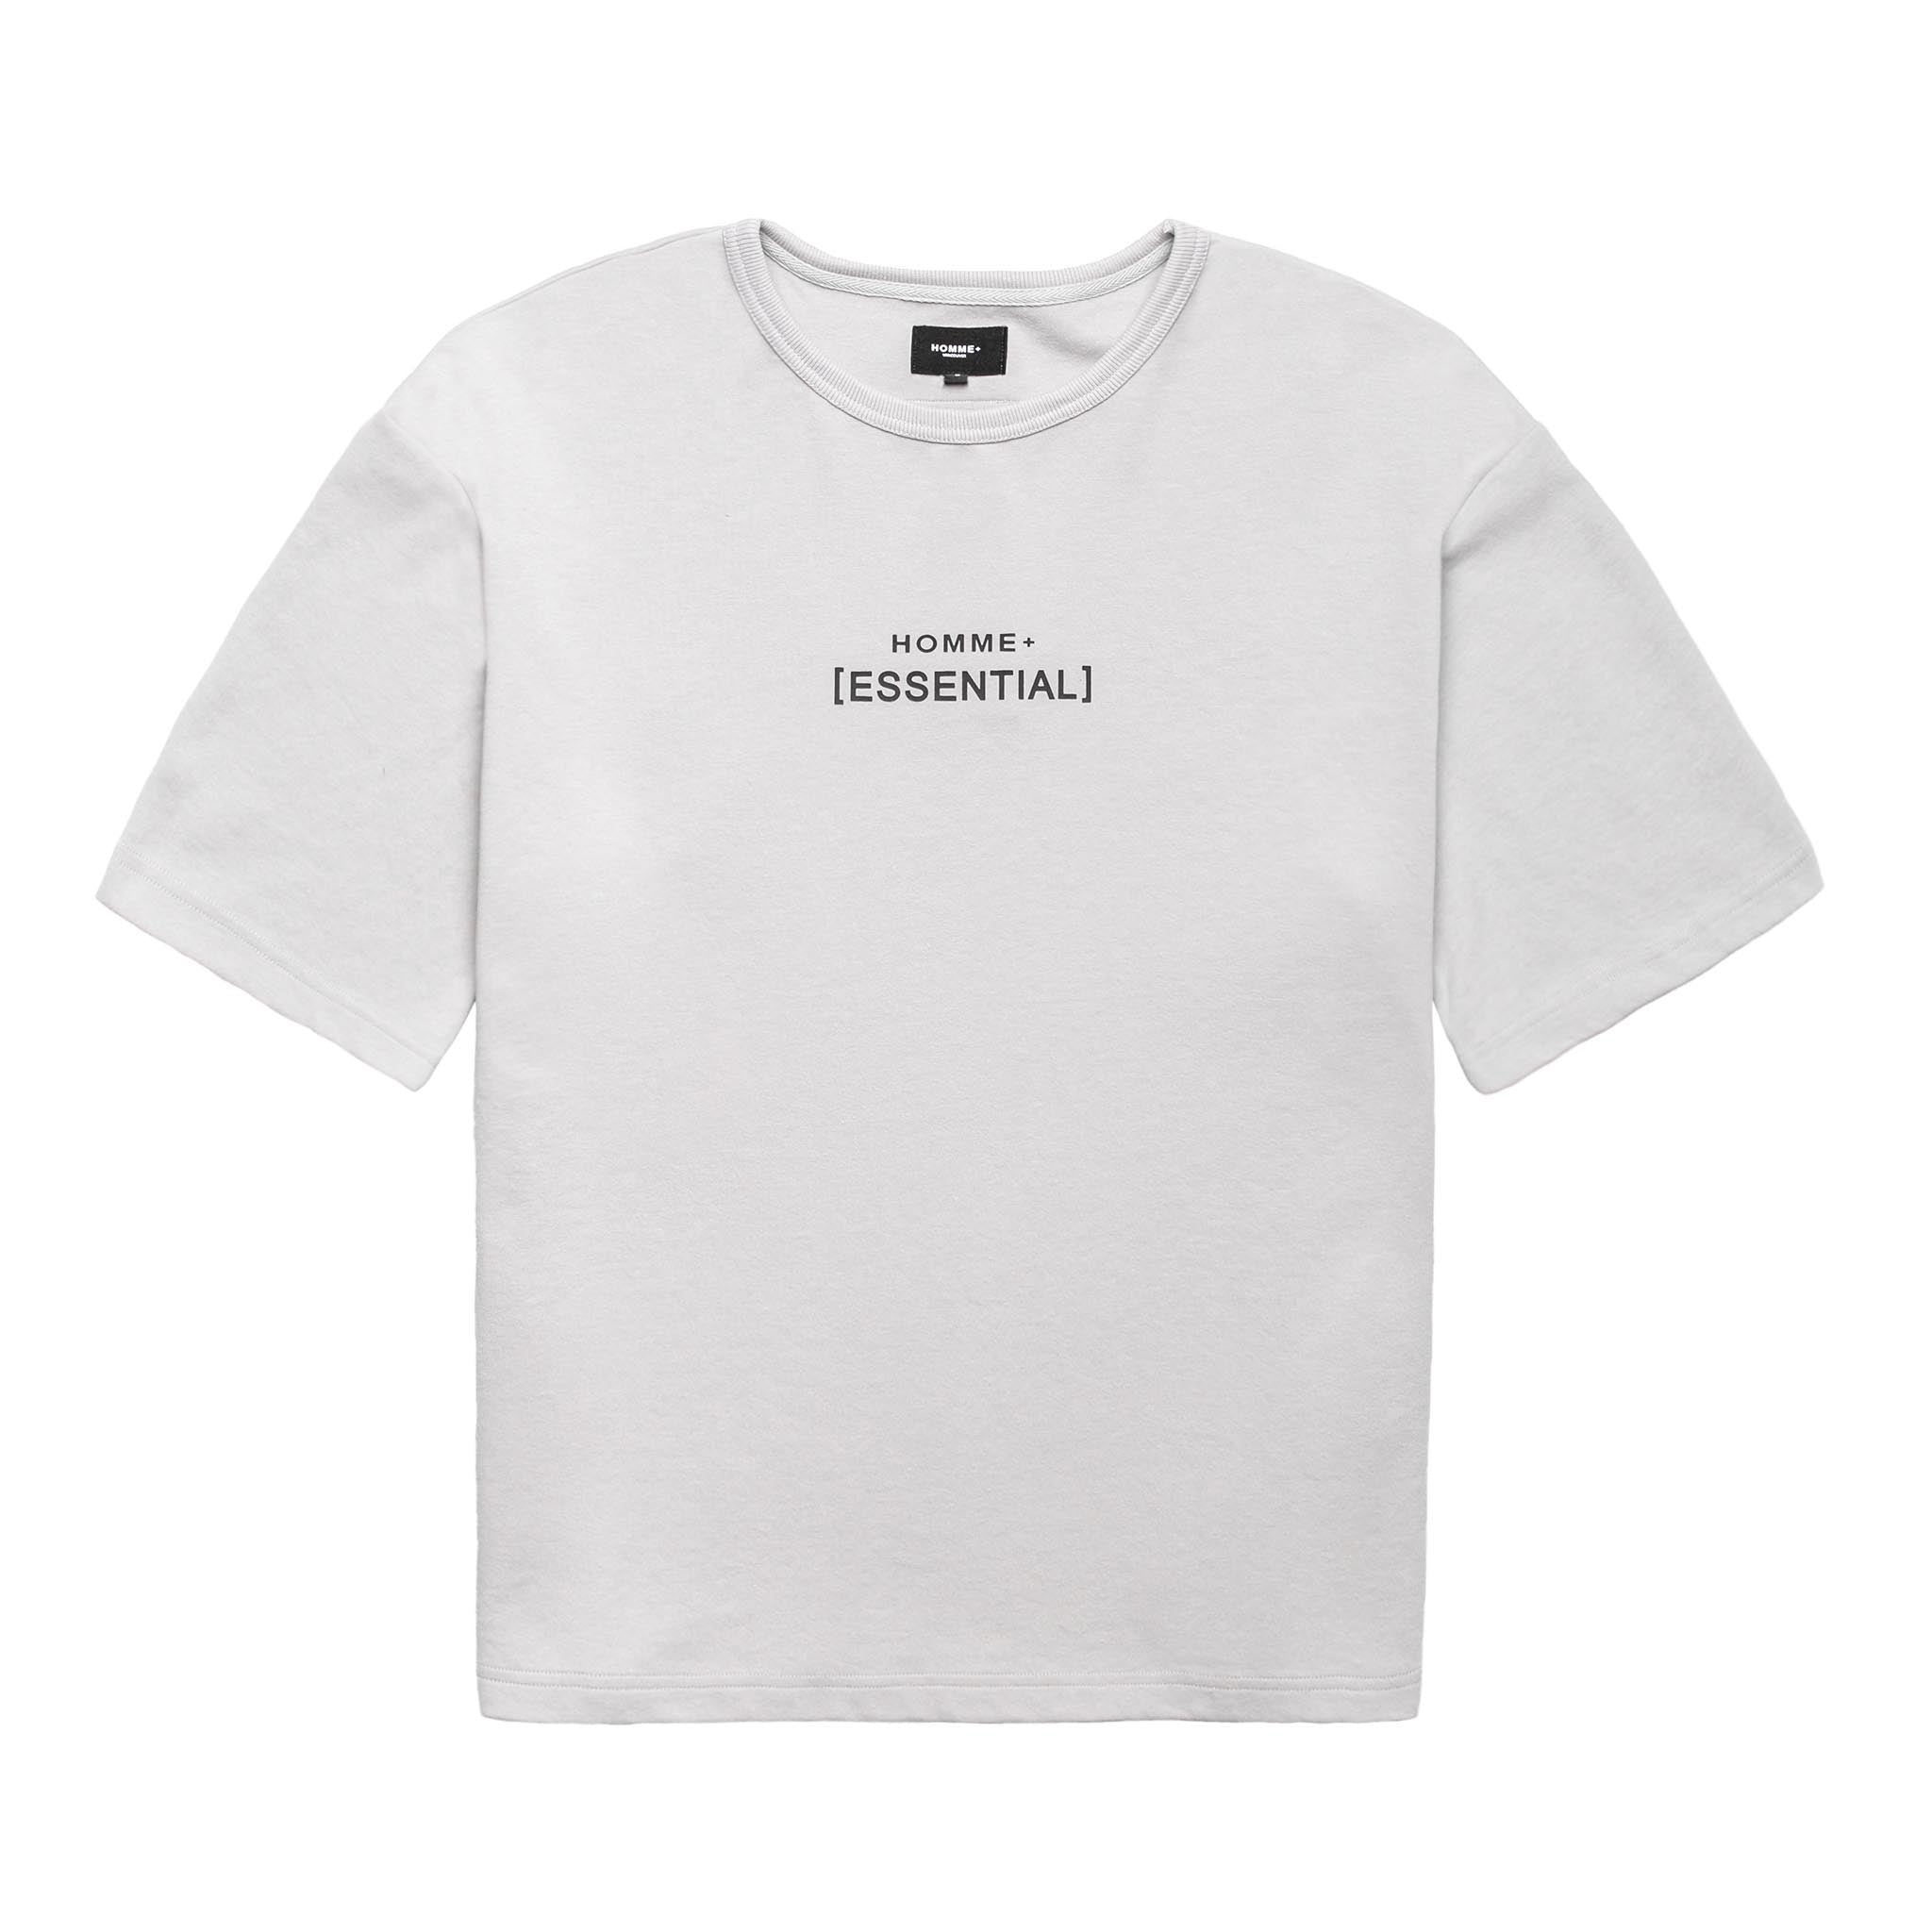 HOMME+ 'ESSENTIAL' Heavyweight Boxy Tee Grey